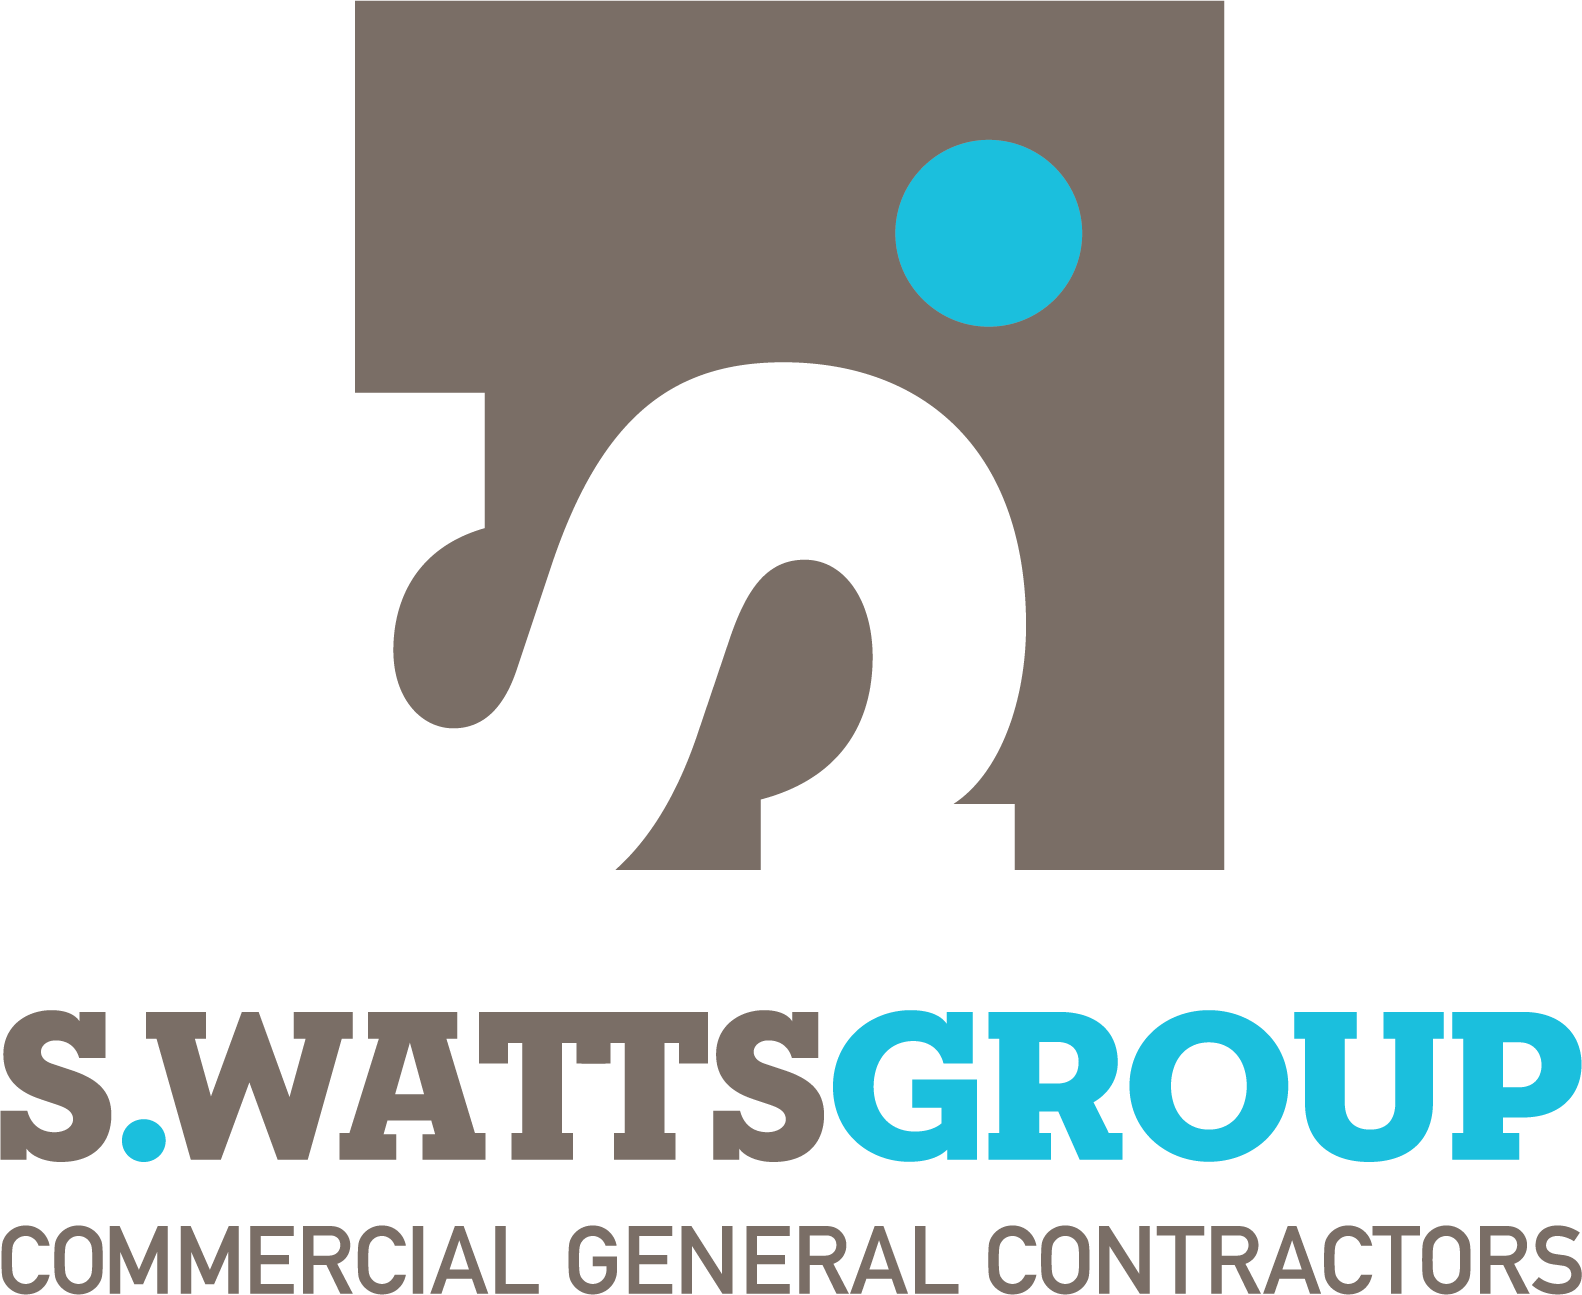 S. Watts Group